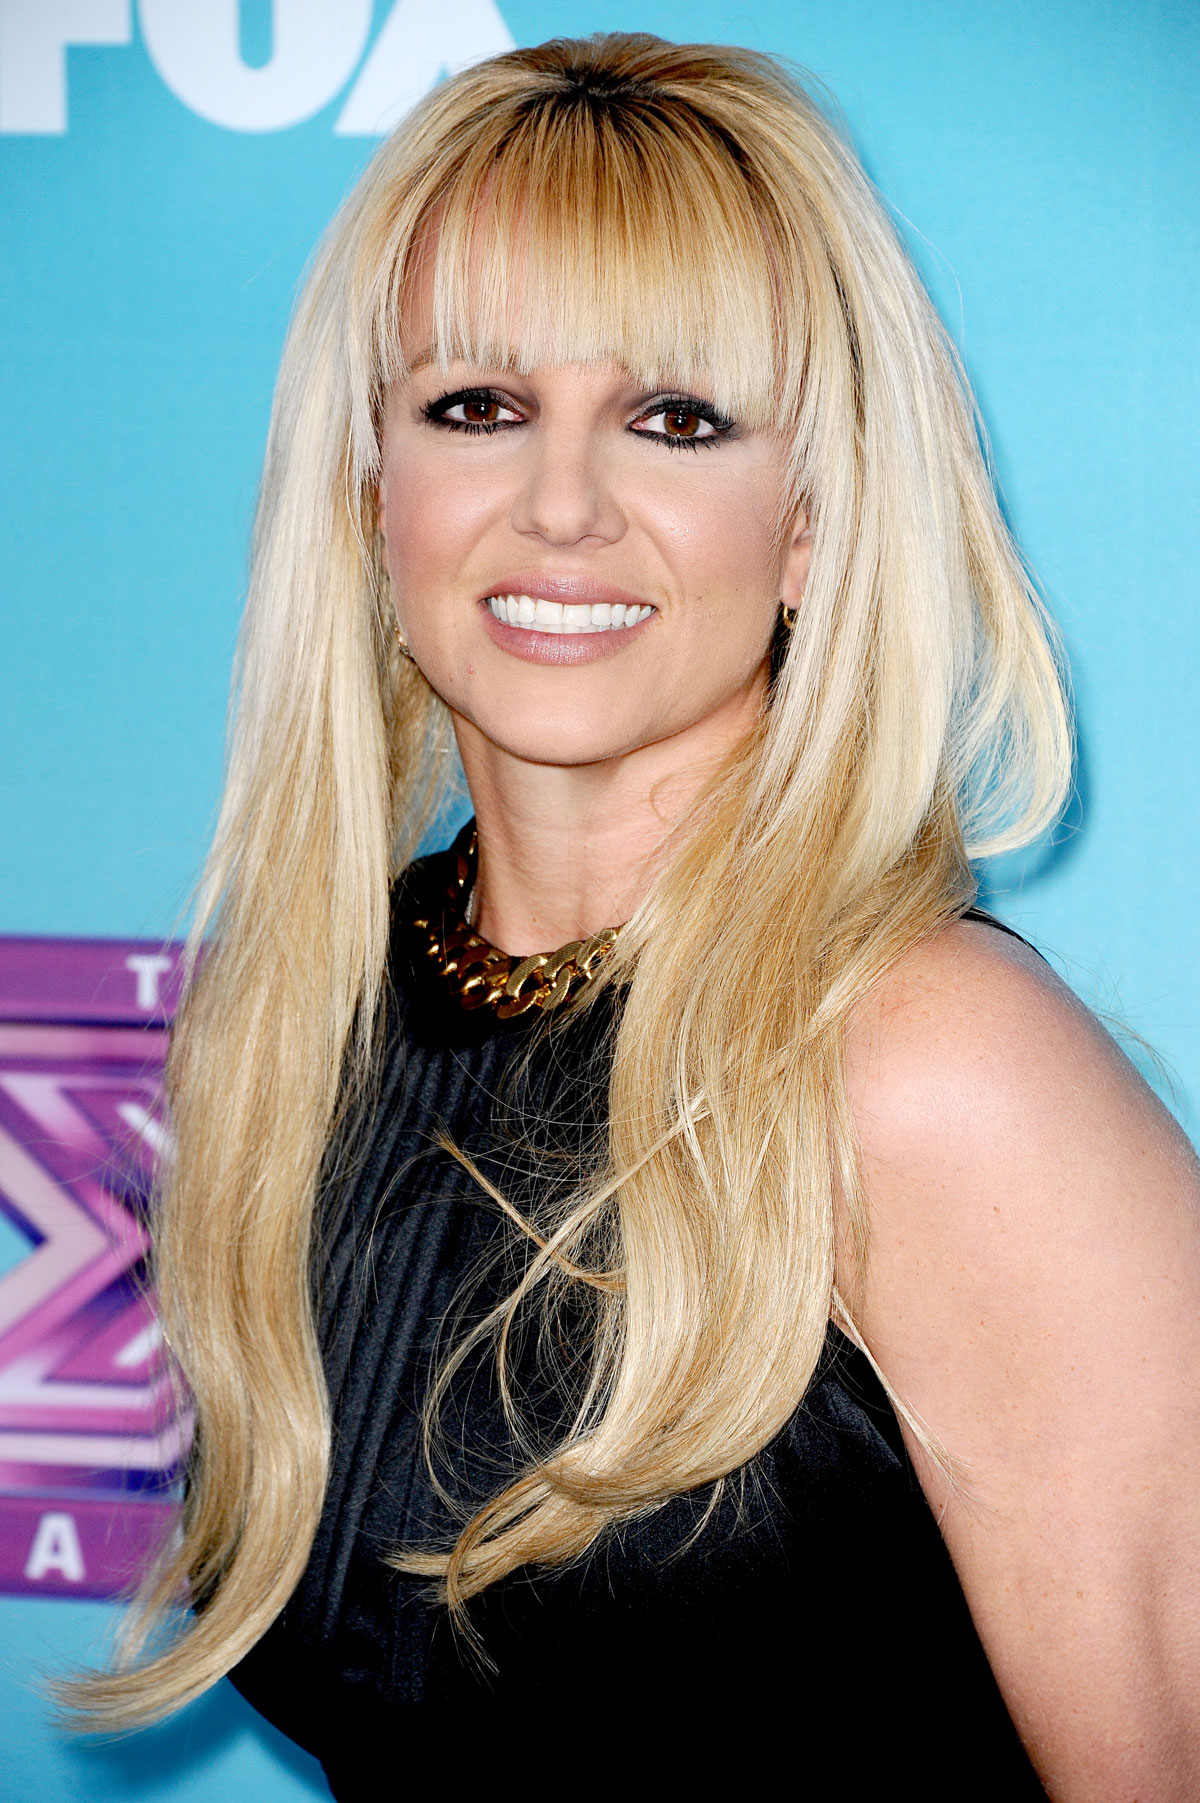 BRITNEY SPEARS at The X Factor Season Finale News Conference in Los Angeles - HawtCelebs